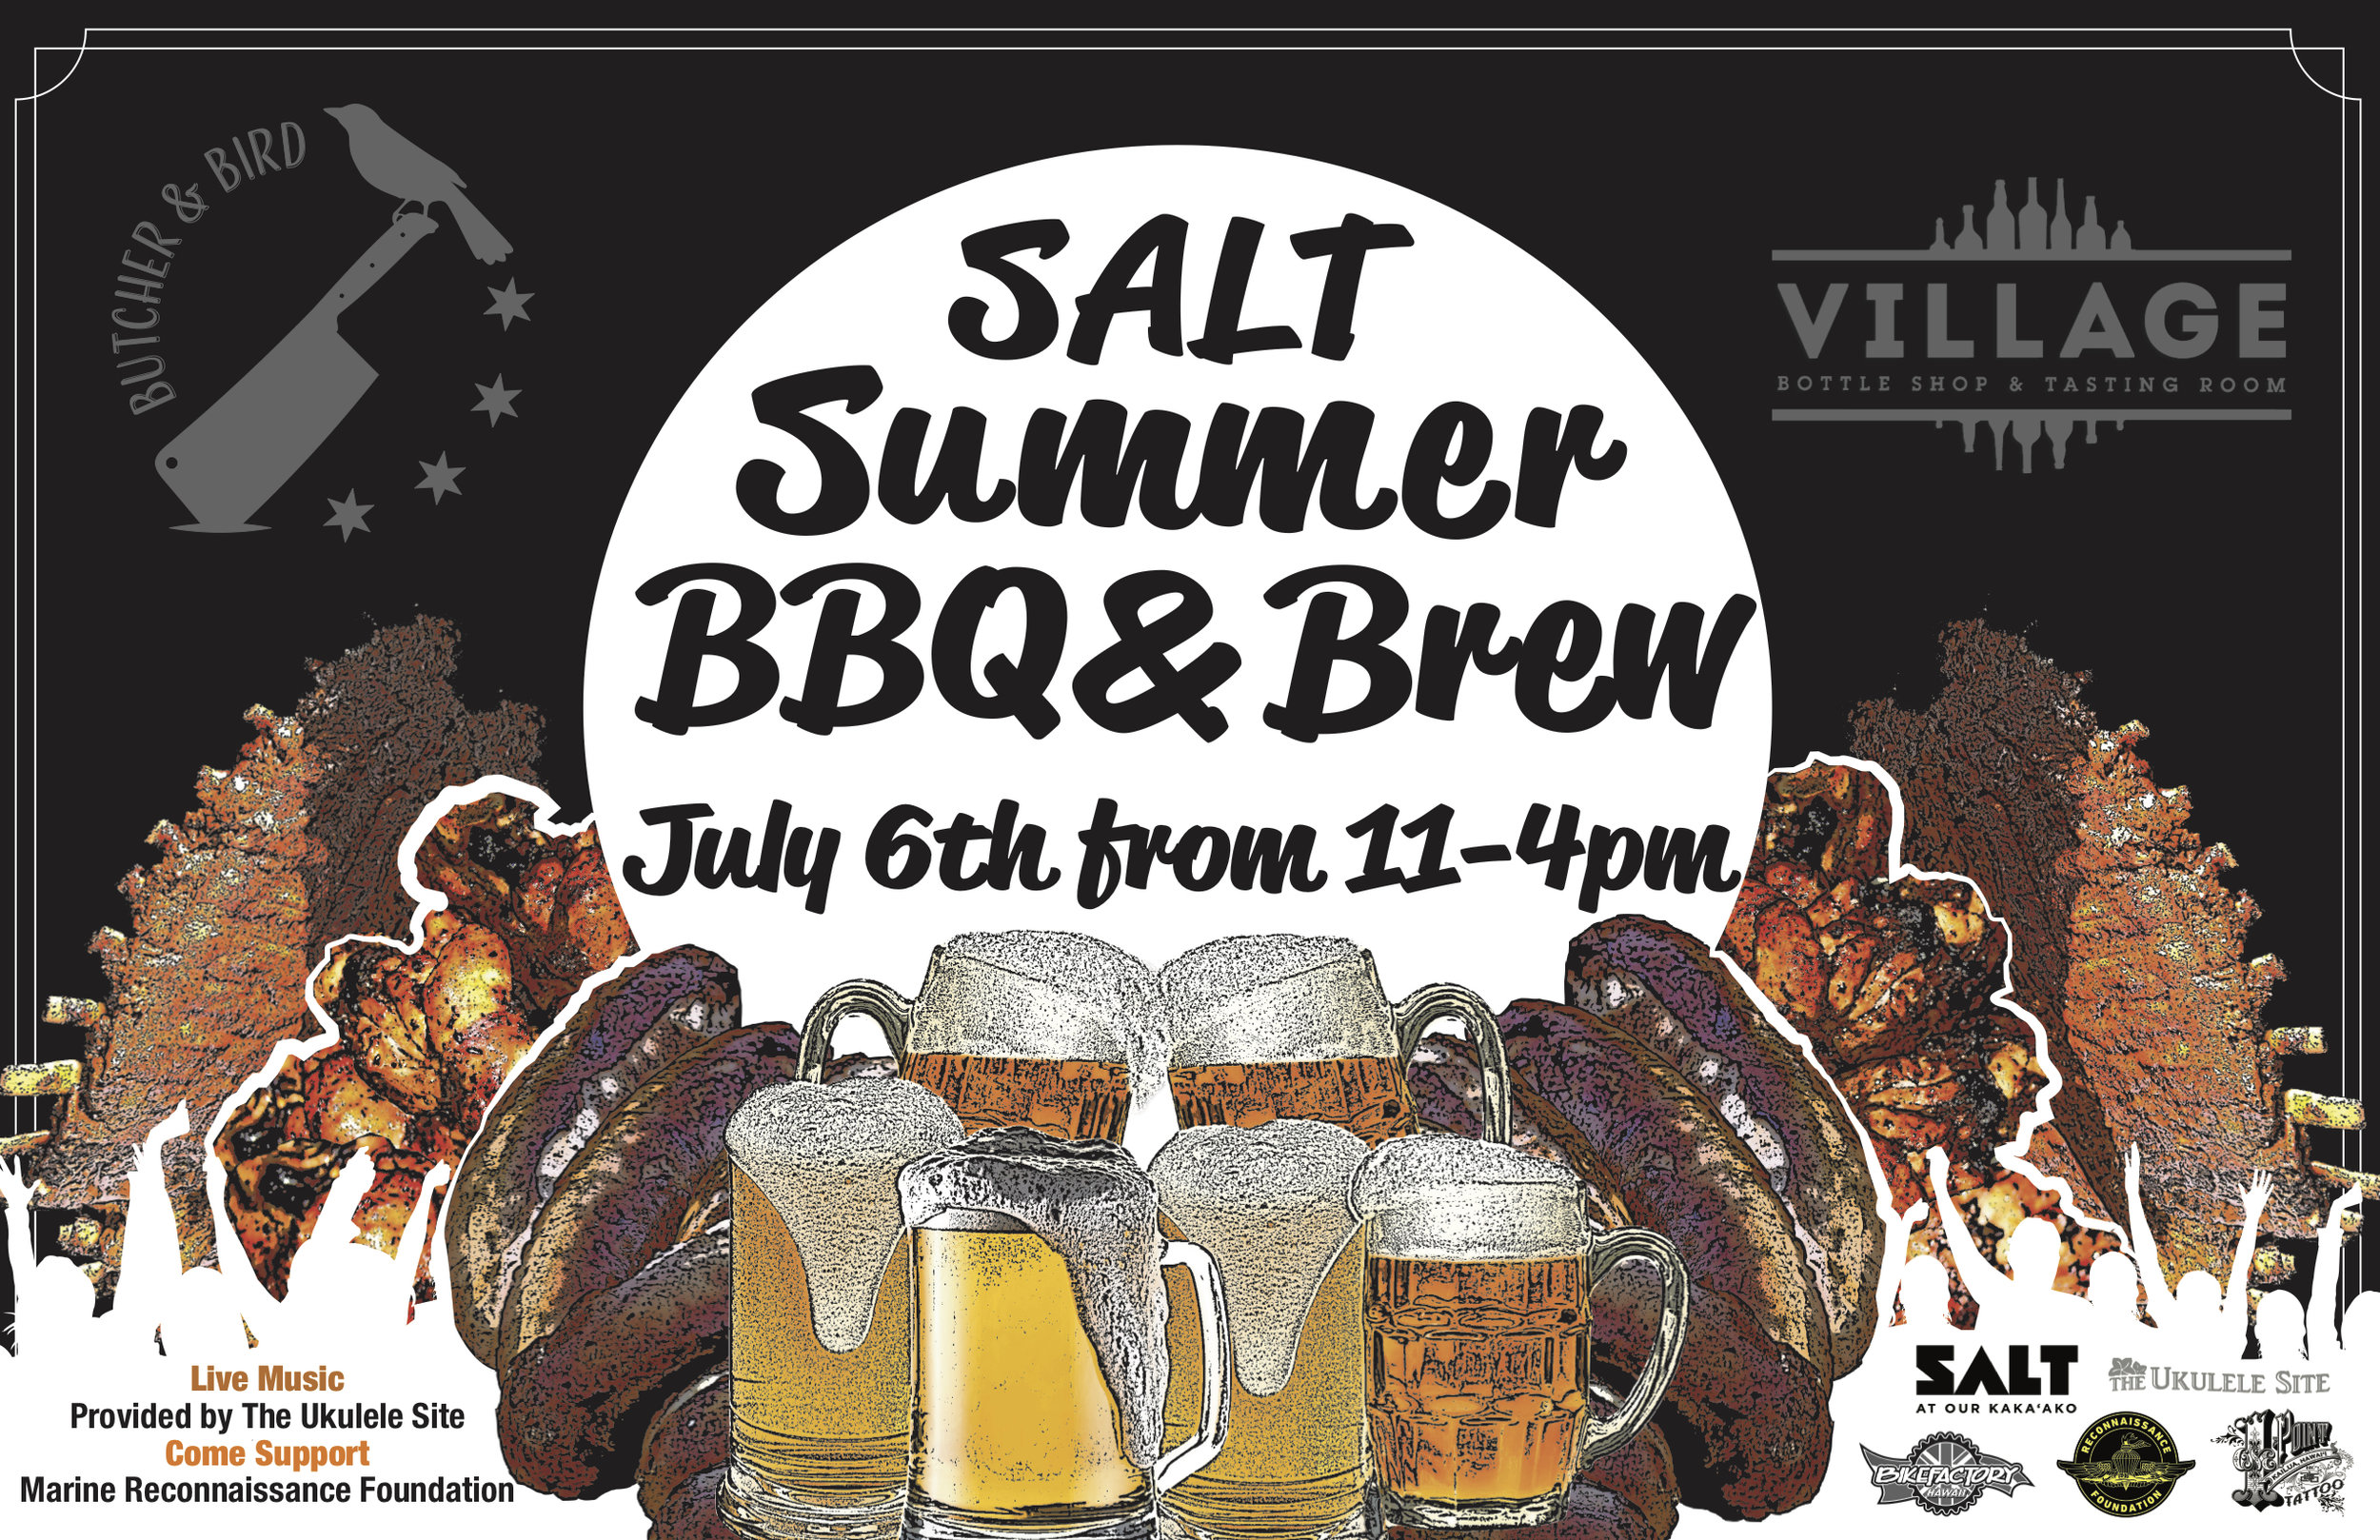 Salt_summer_bbq_brew_village.jpg